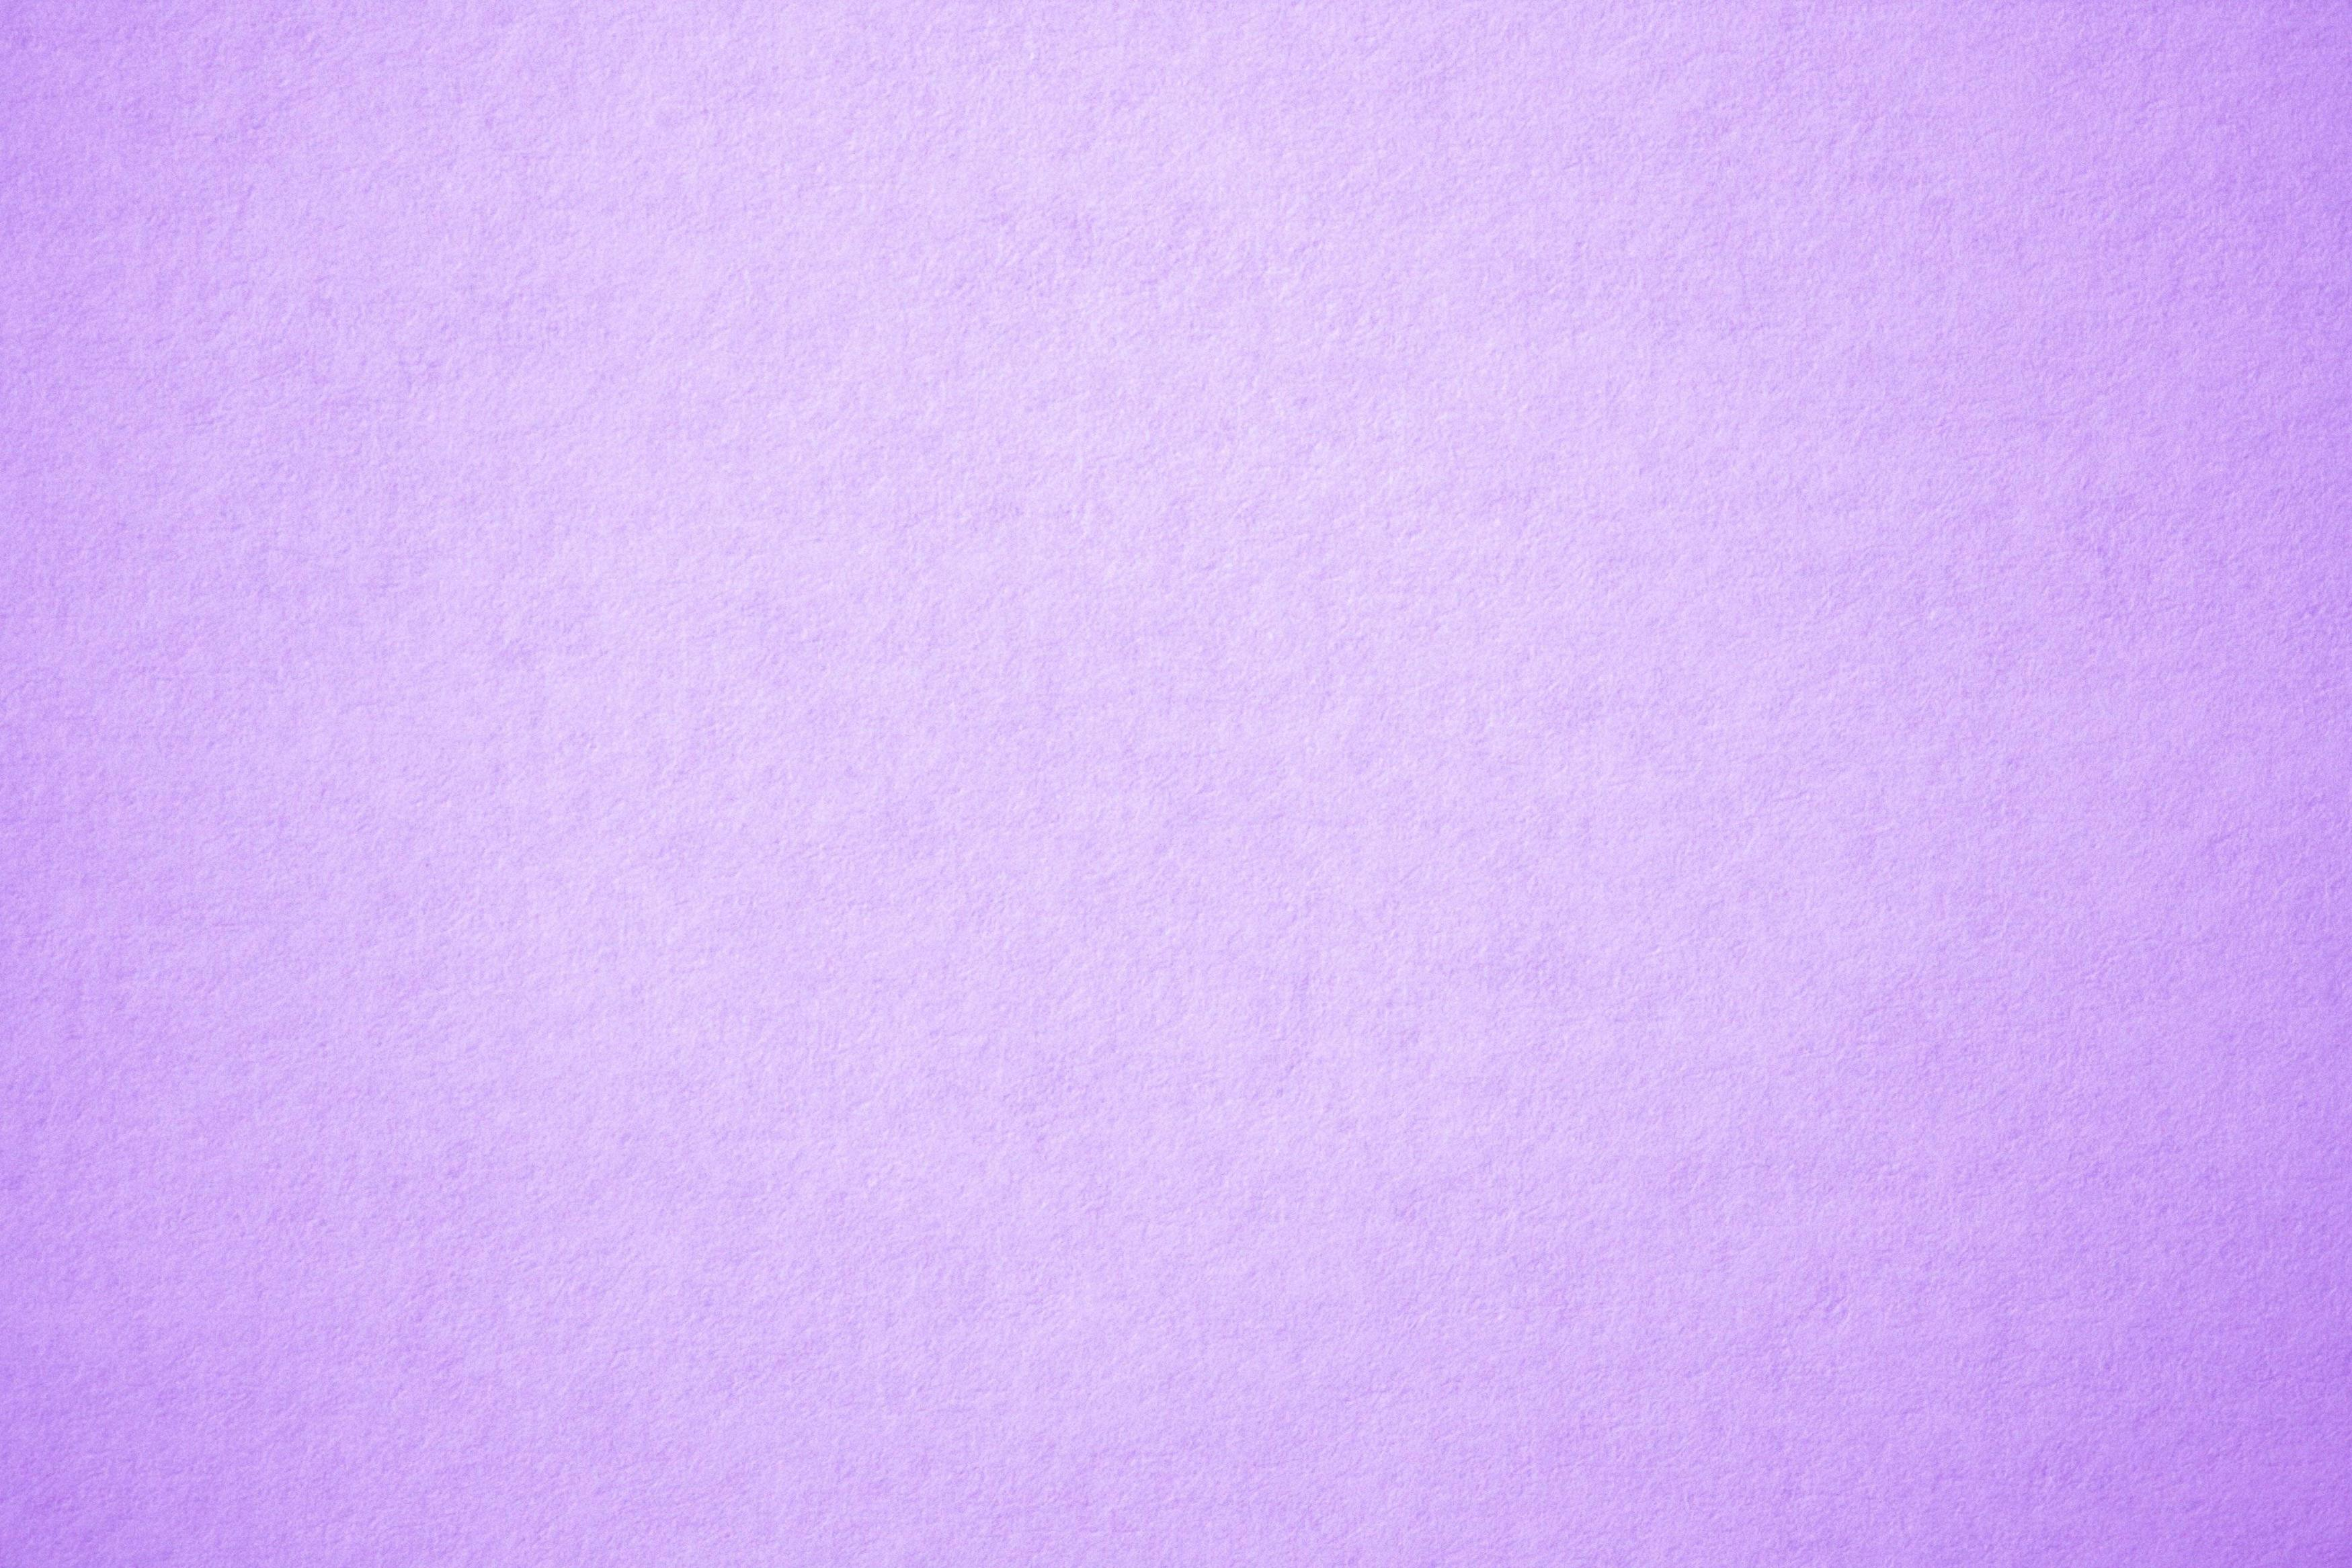 Purple Pastel Aesthetic Wallpapers Top Free Purple Pastel